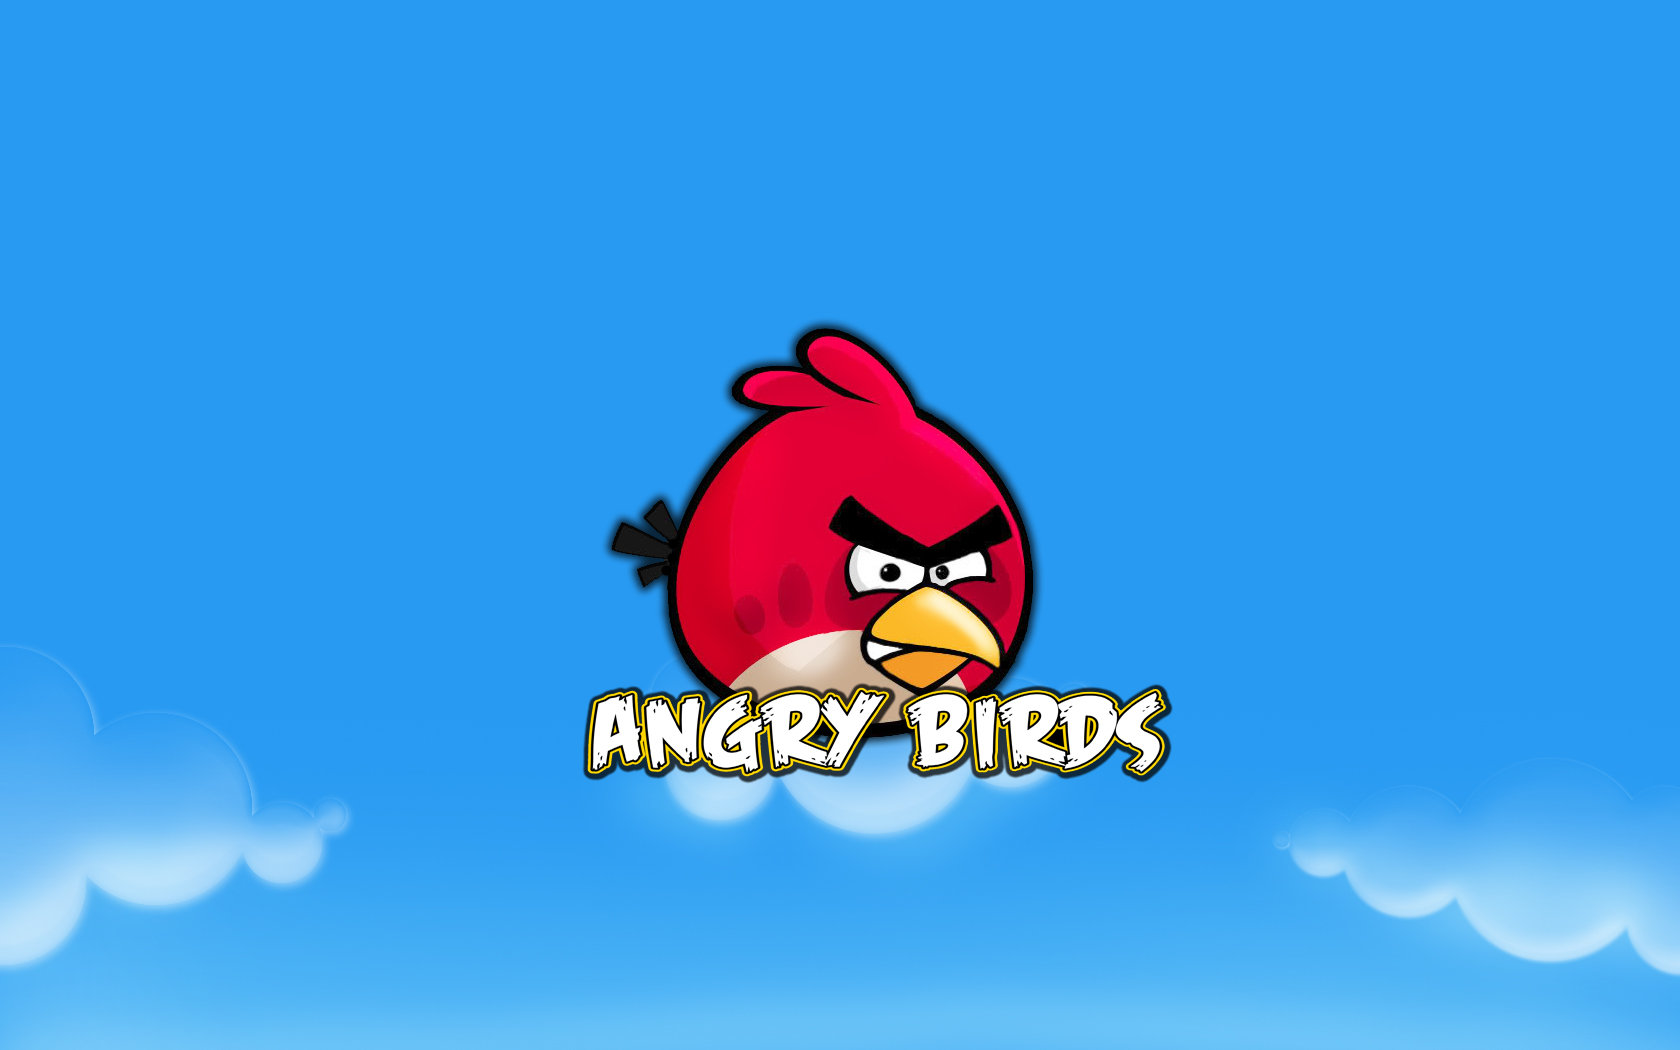 Angry Birds: 200 Million Downloads & Counting